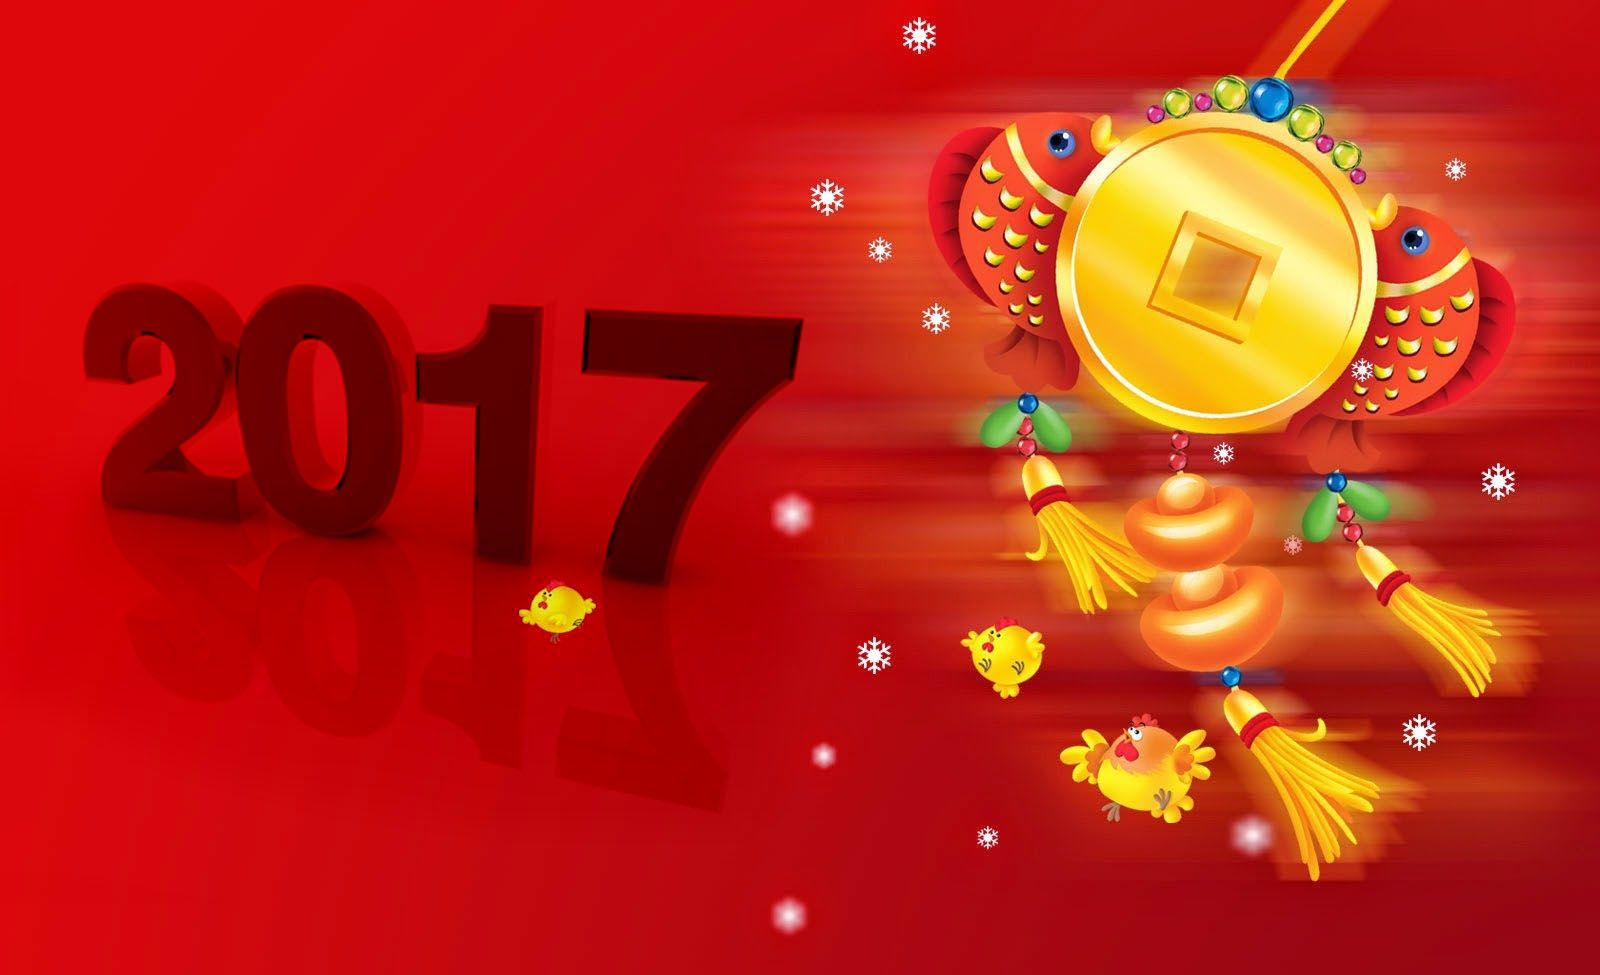 Find The Great Collection Of Top 10 Happy New Year HD Wallpaper